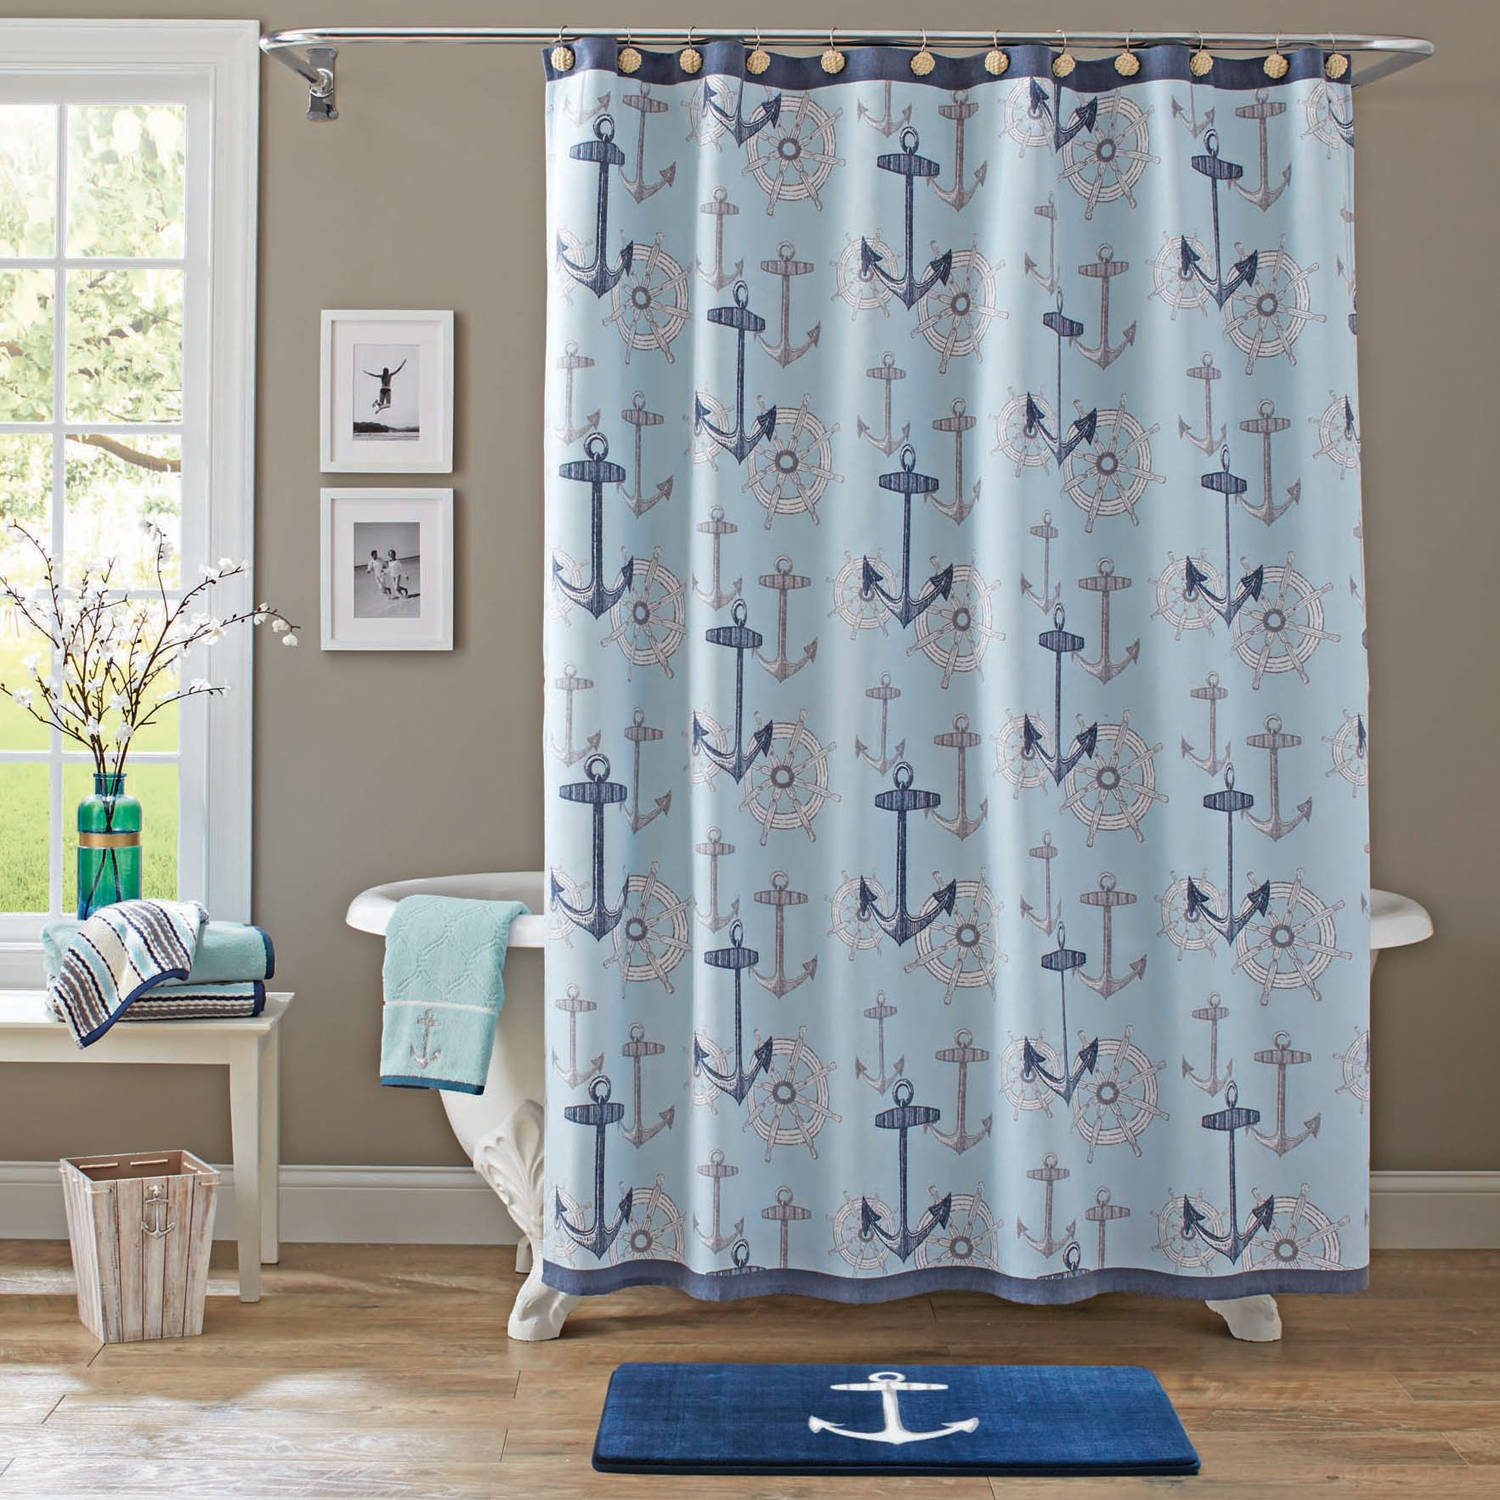 Curtain Walmart Shower Curtain Navy Fabric Shower Curtain Within Sizing  1500 X 1500